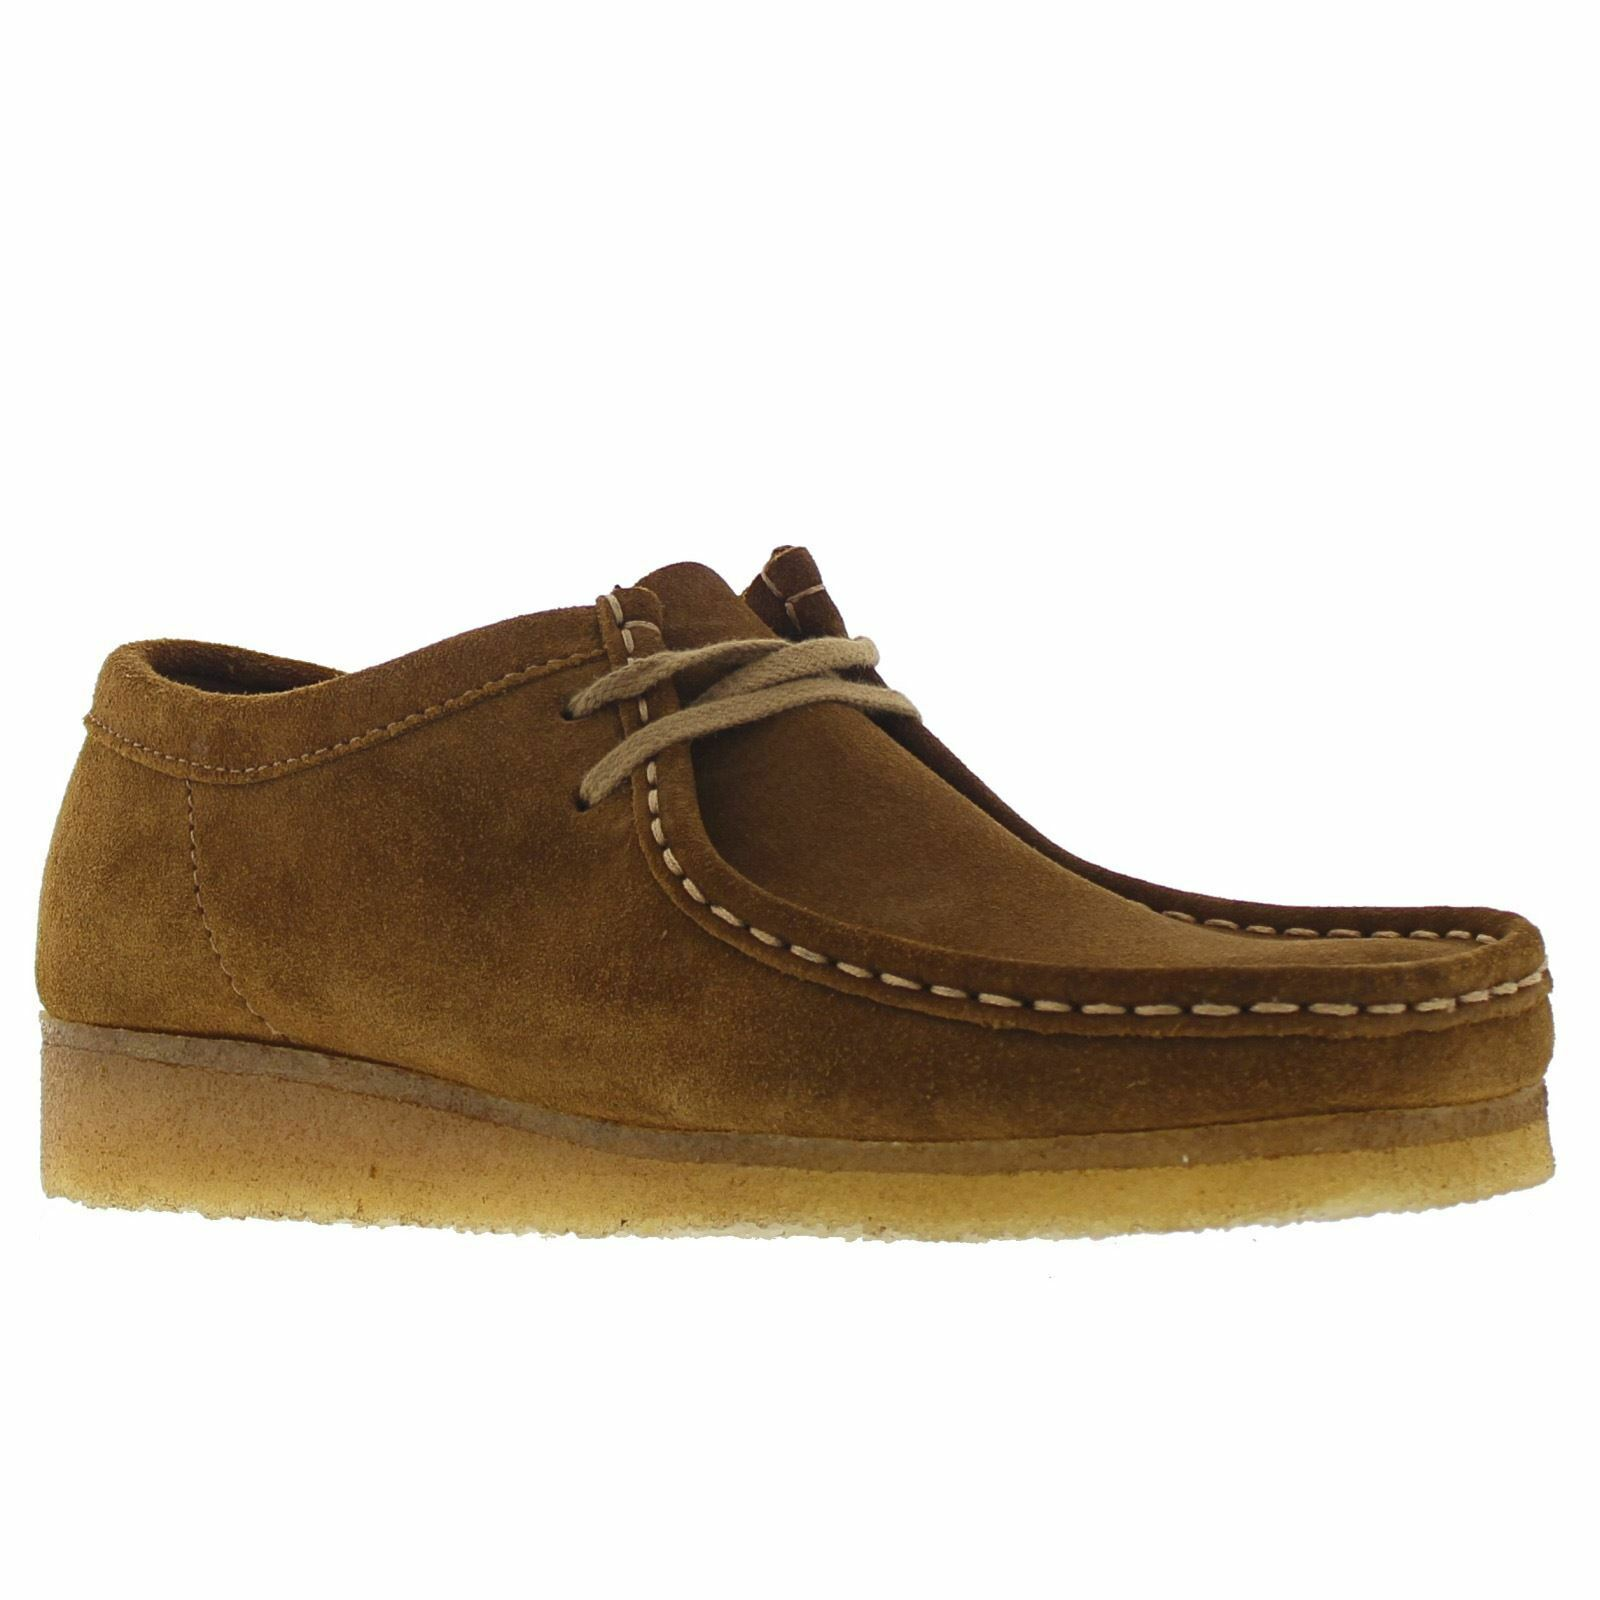 Clarks Originals Originals Clarks Wallabee Cola Mens Schuhes acf4d5